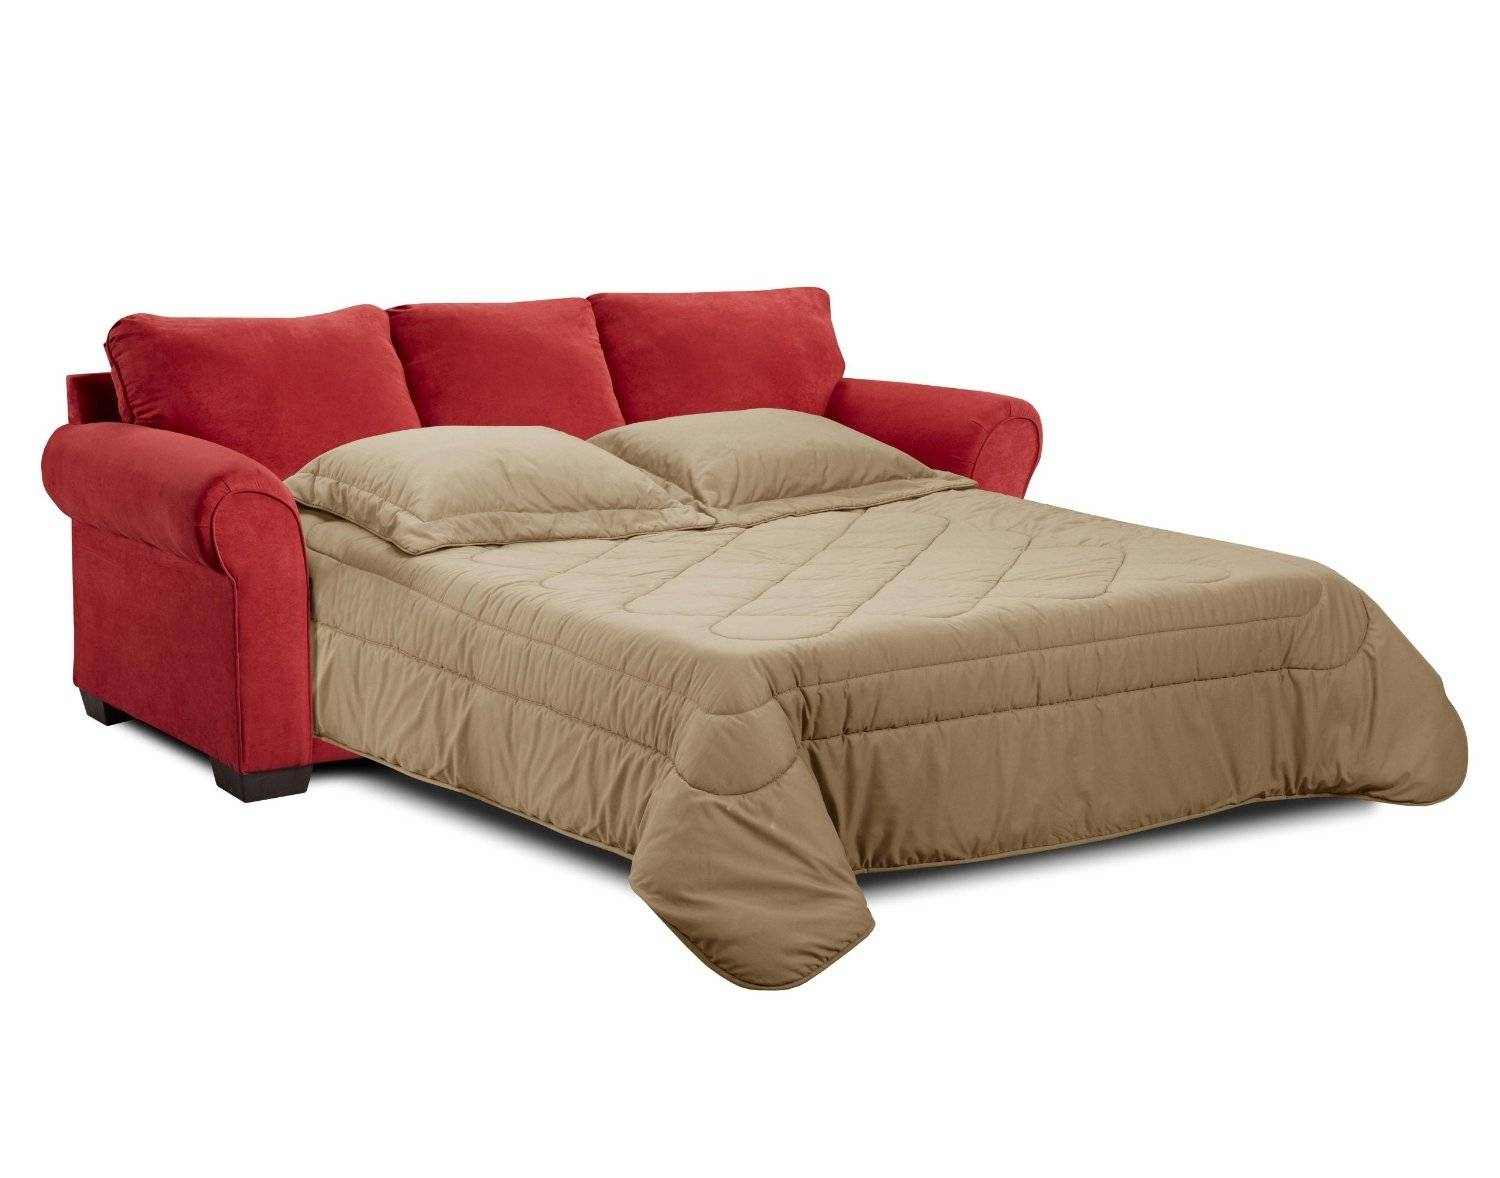 Furniture Home : Sleeper Sofas And Sofa Sleepers Queen Size Modern With Sofa Sleepers Queen Size (View 4 of 30)